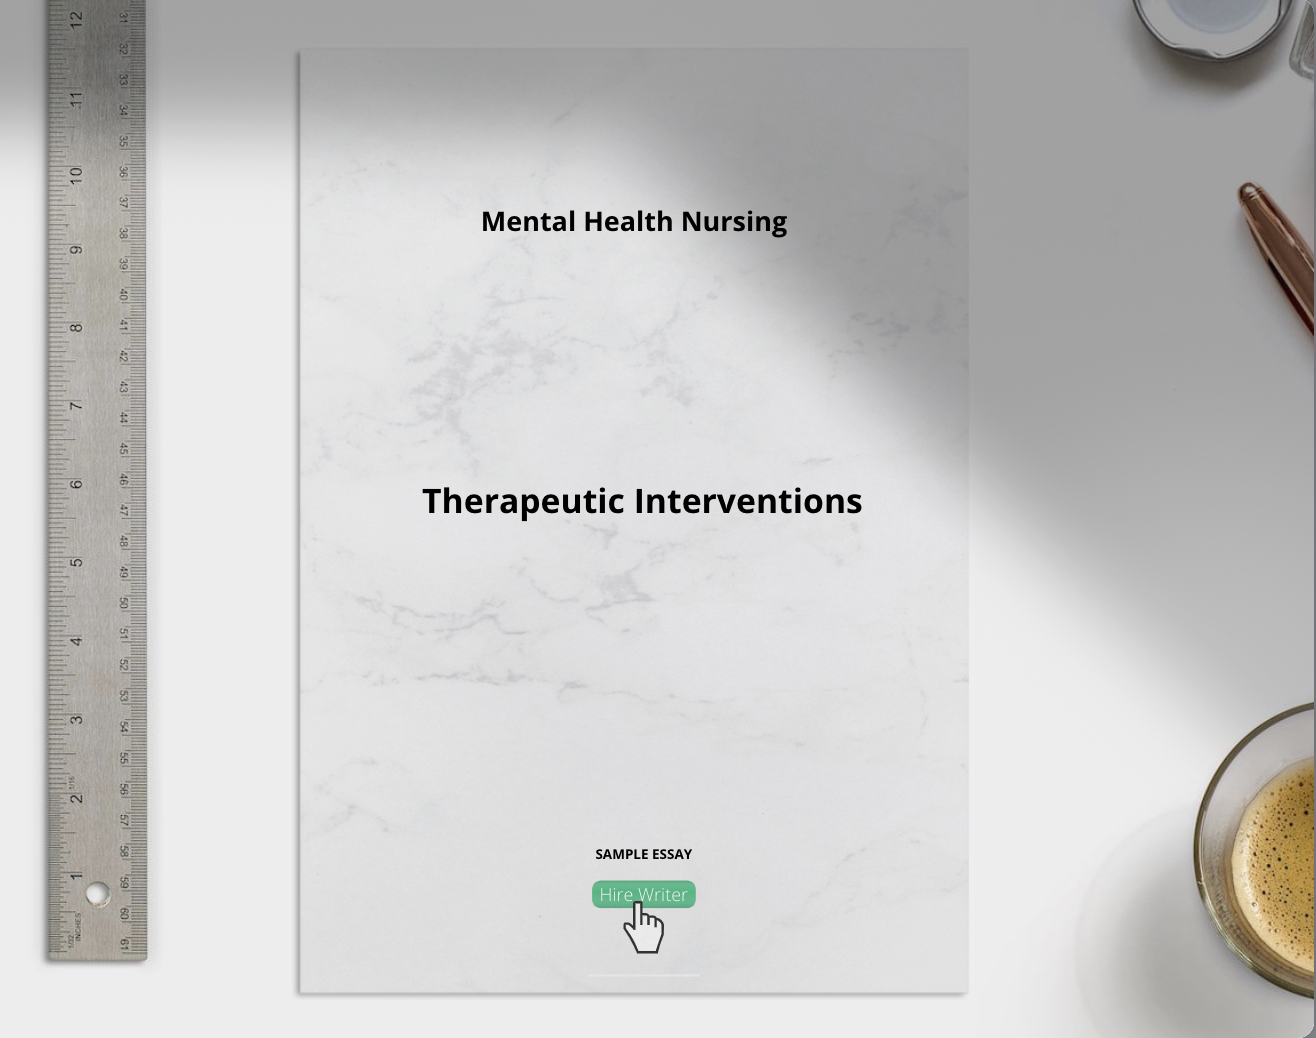 Mental Health Nursing Therapeutic Interventions essay sample